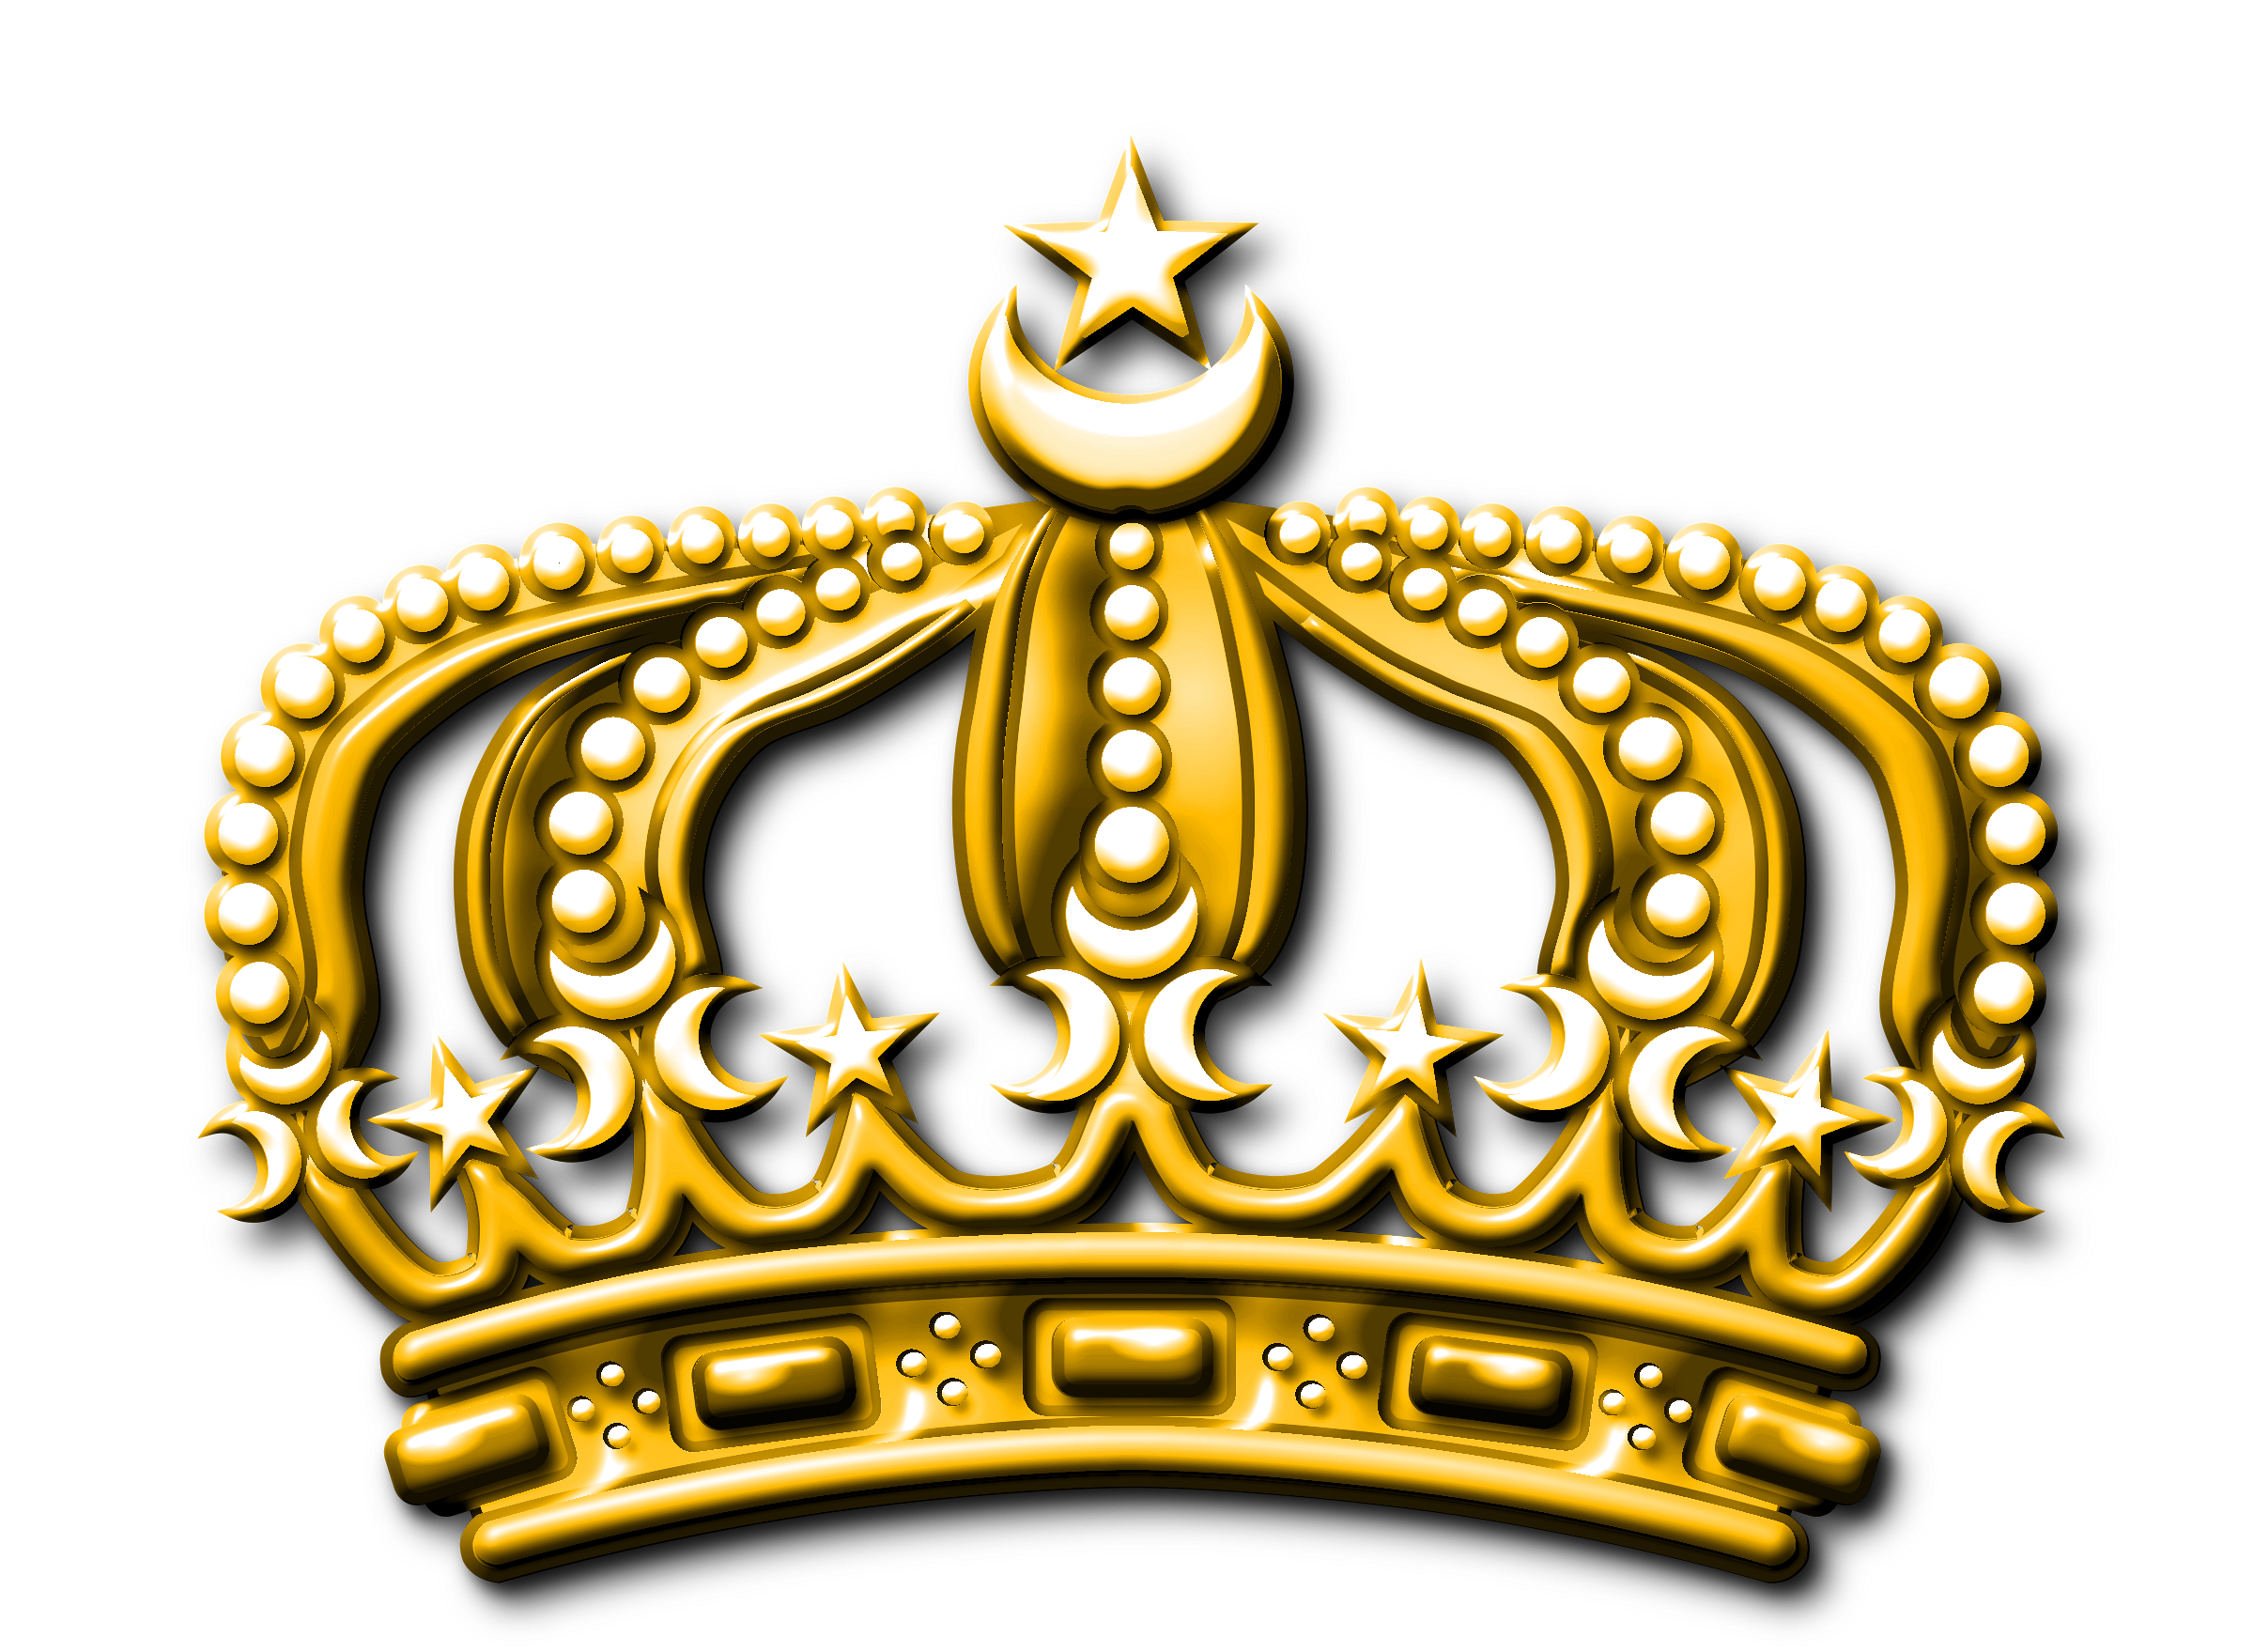 Gold Crown Clipart - Clipart Kid